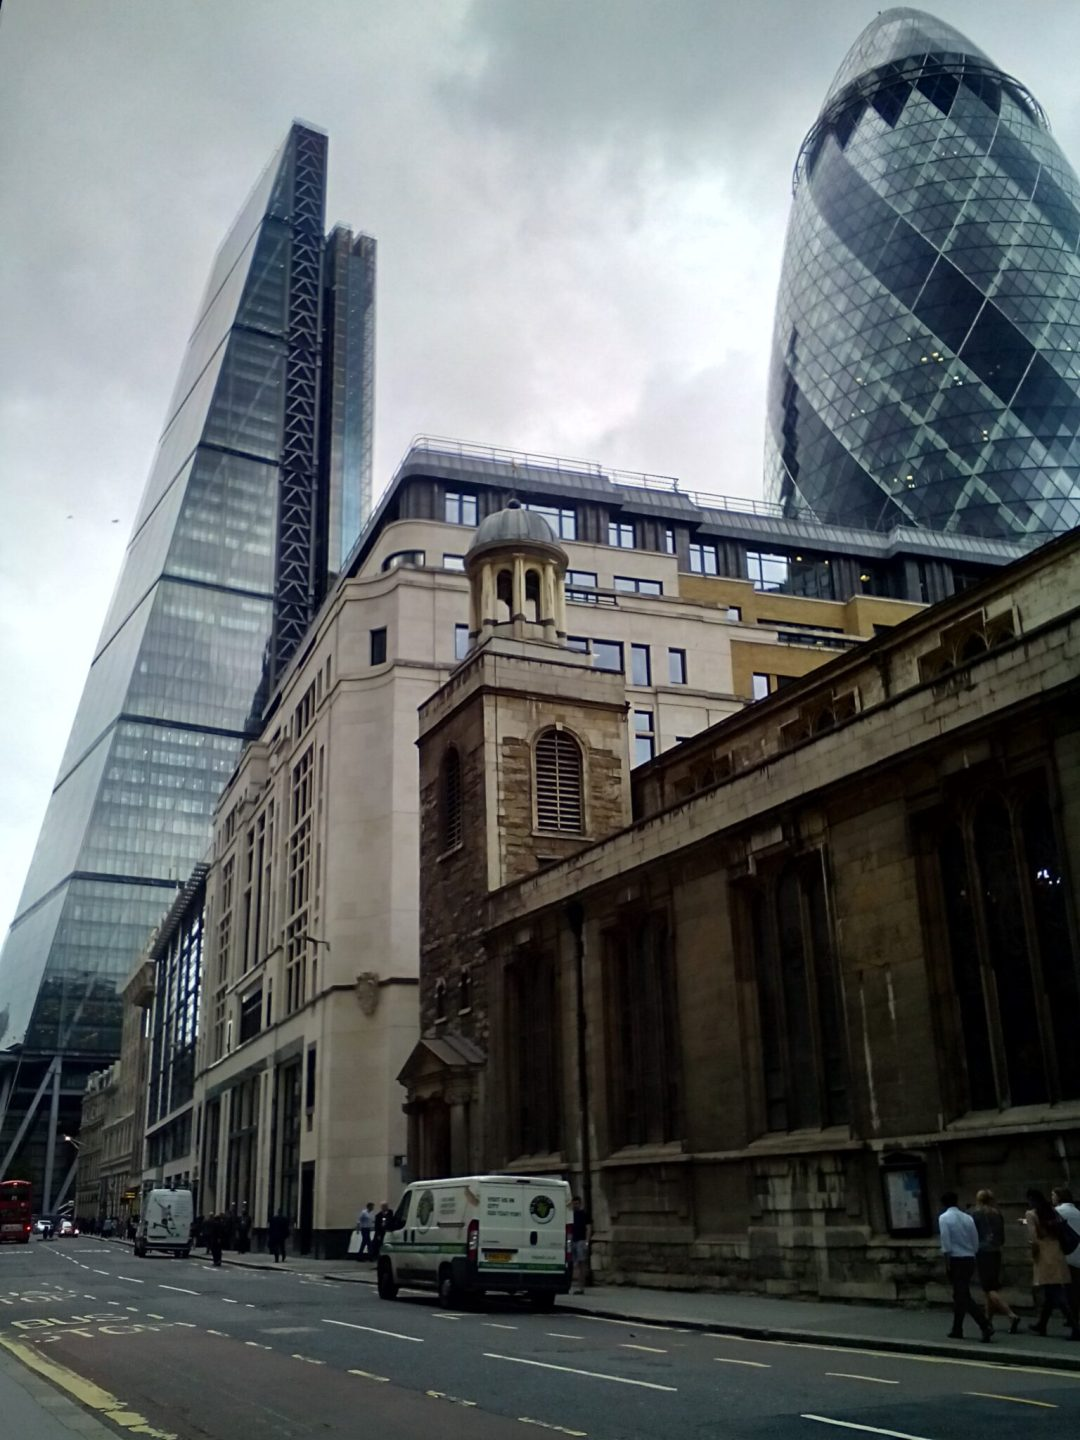 Leadanhall and The Gherkin